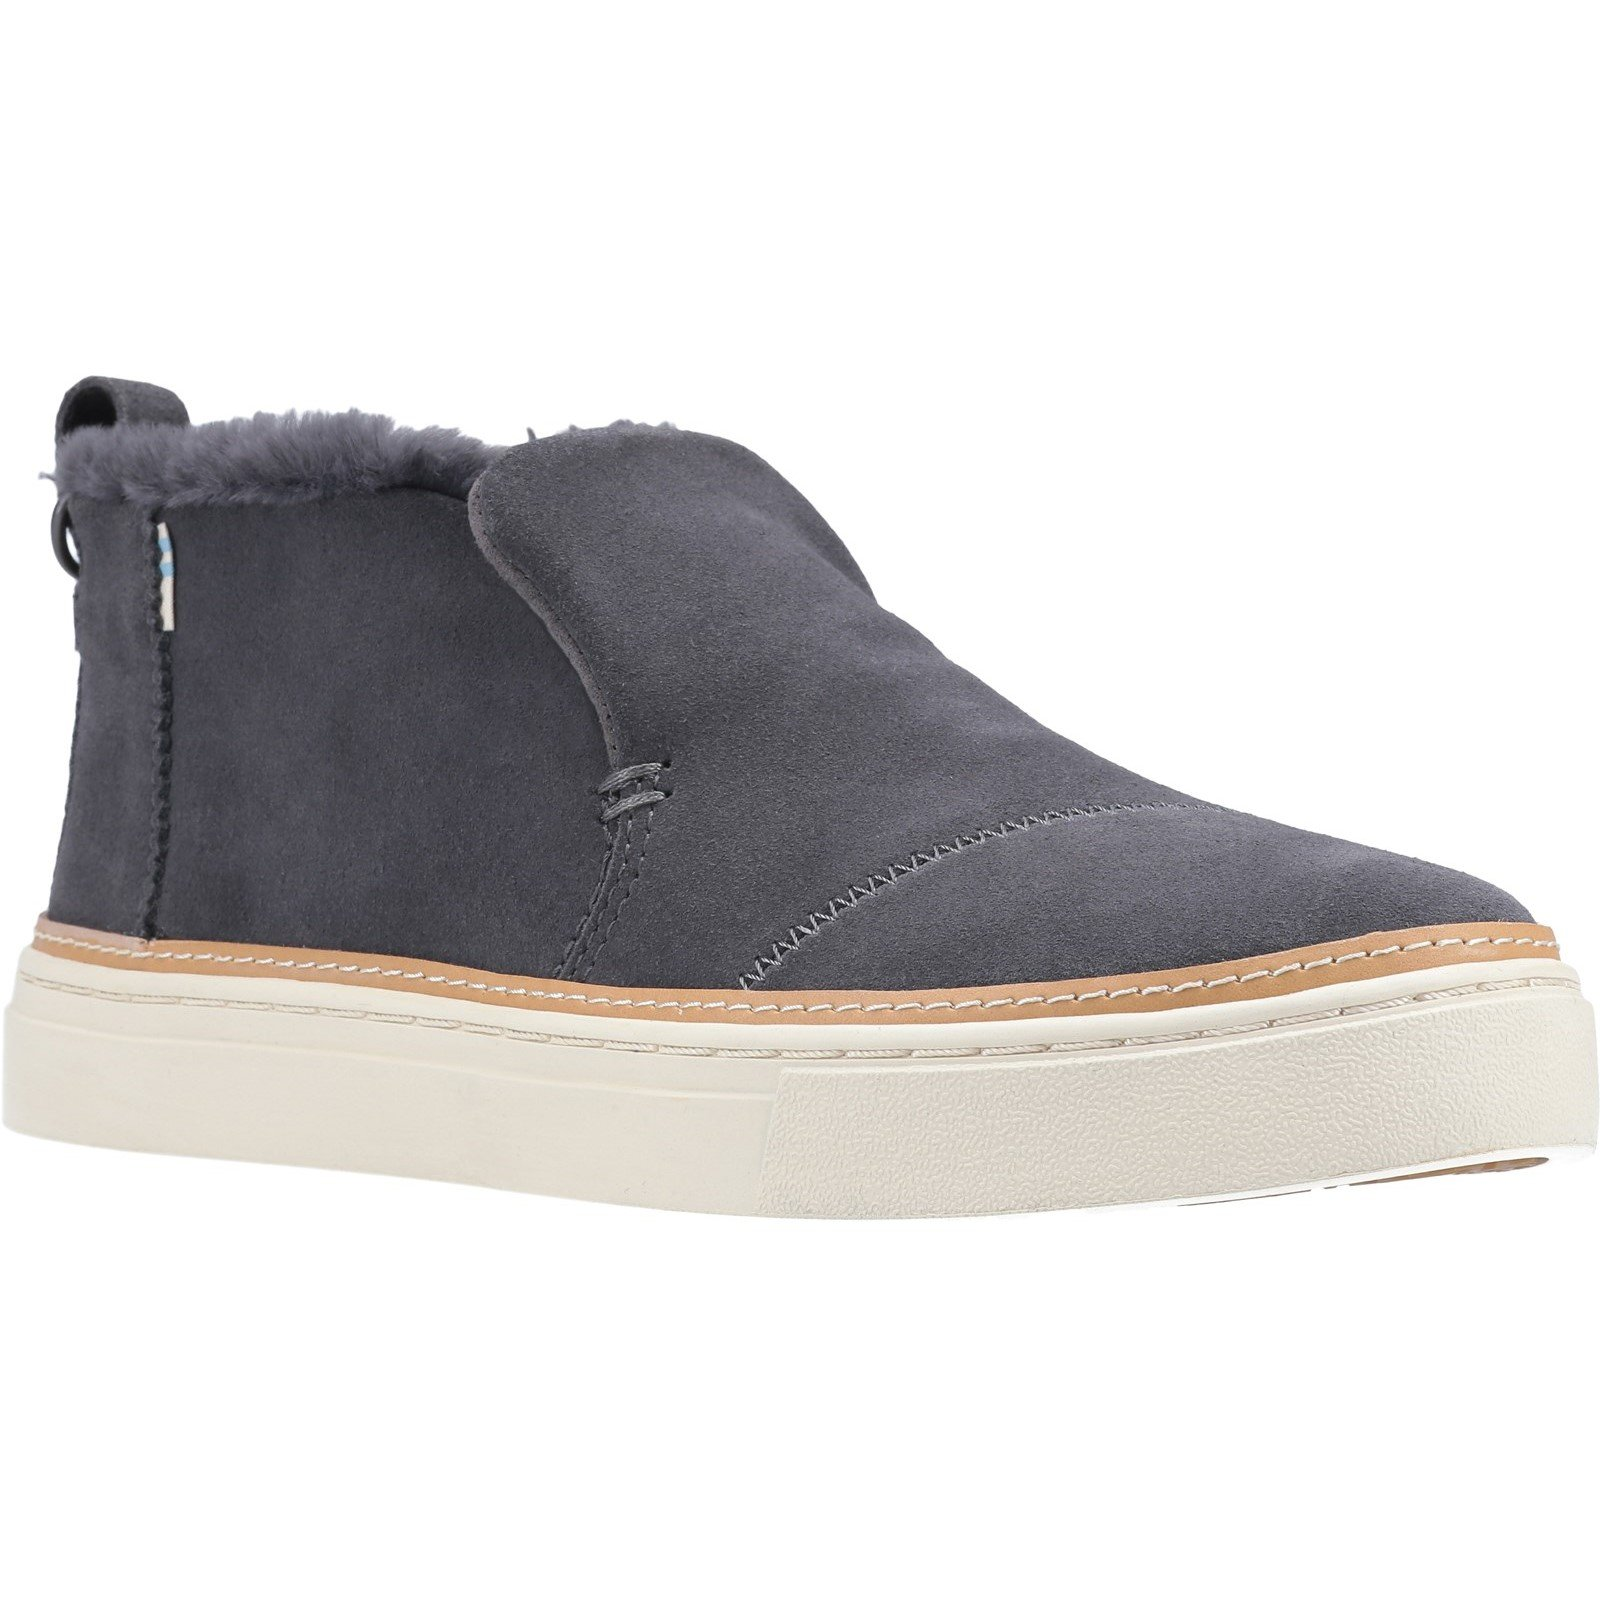 Hush Puppies Men's Paxton Chelsea Boot Various Colours 32882 - Gry Suede/Faux Shearling 4